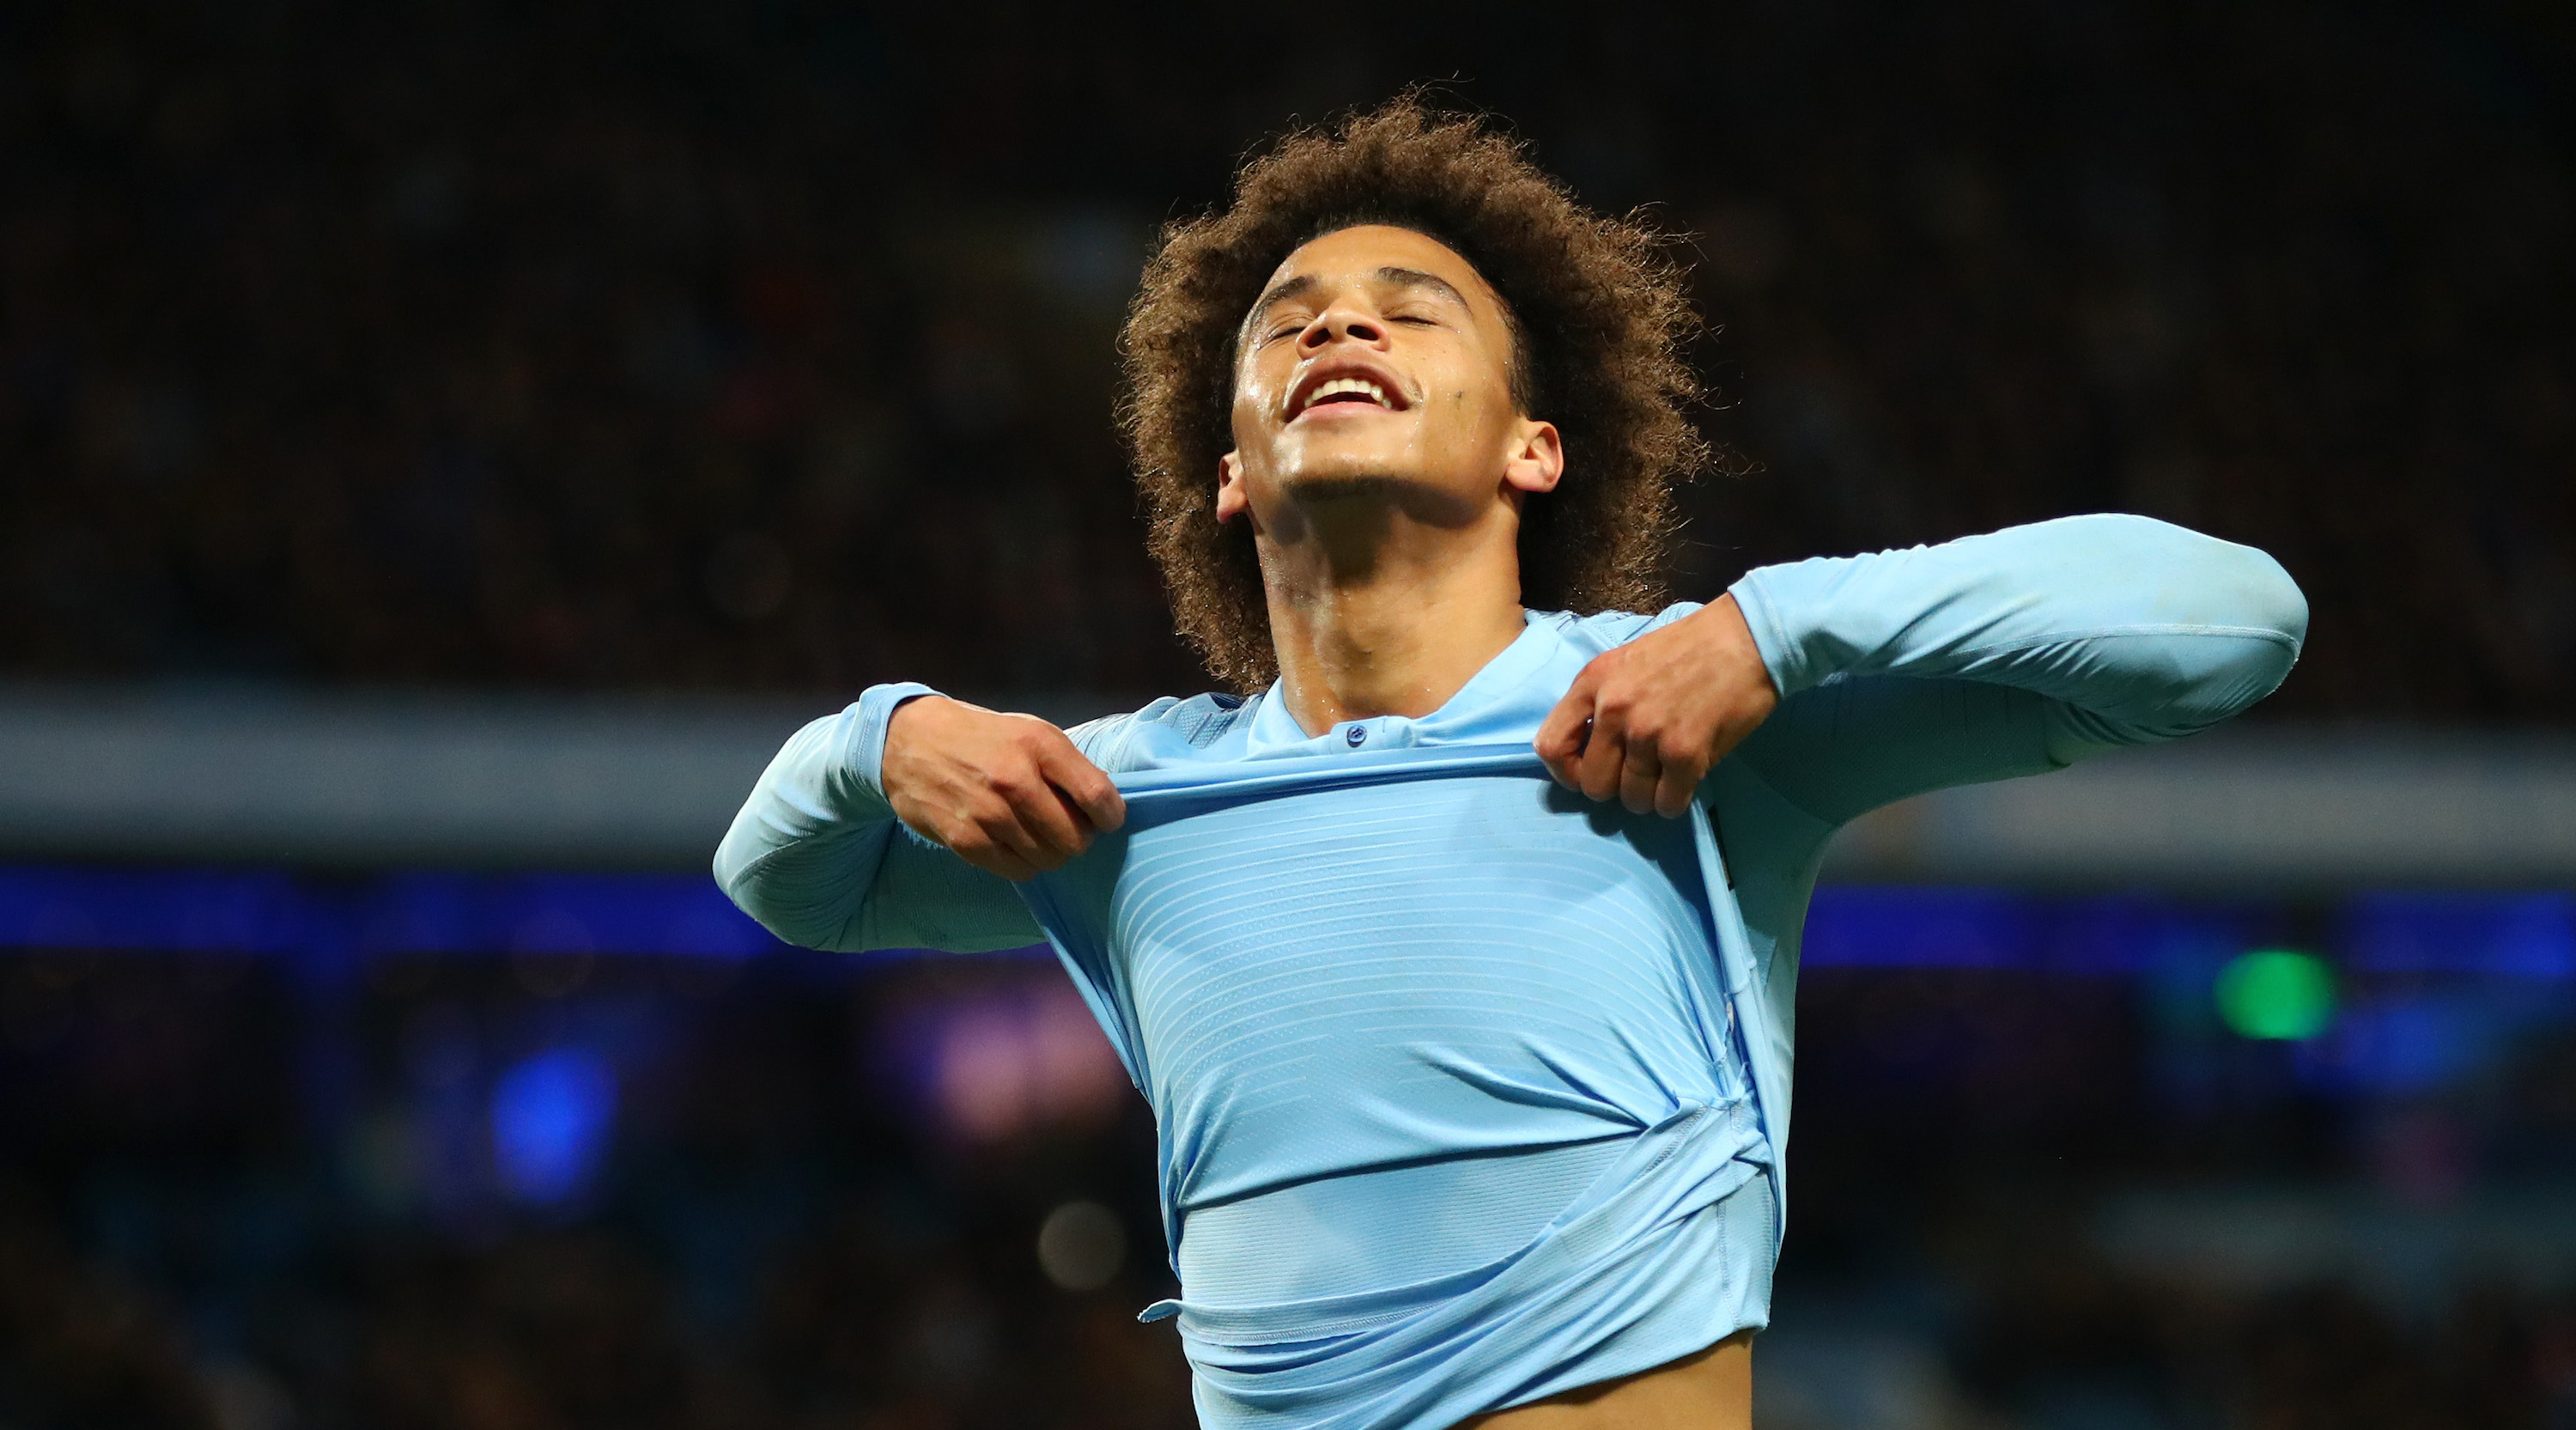 Leroy Sane of Manchester City reacts during the Premier League match between Manchester City and AFC Bournemouth at Etihad Stadium on December 1, 2018 in Manchester, United Kingdom. (Photo by Clive Brunskill/Getty Images)